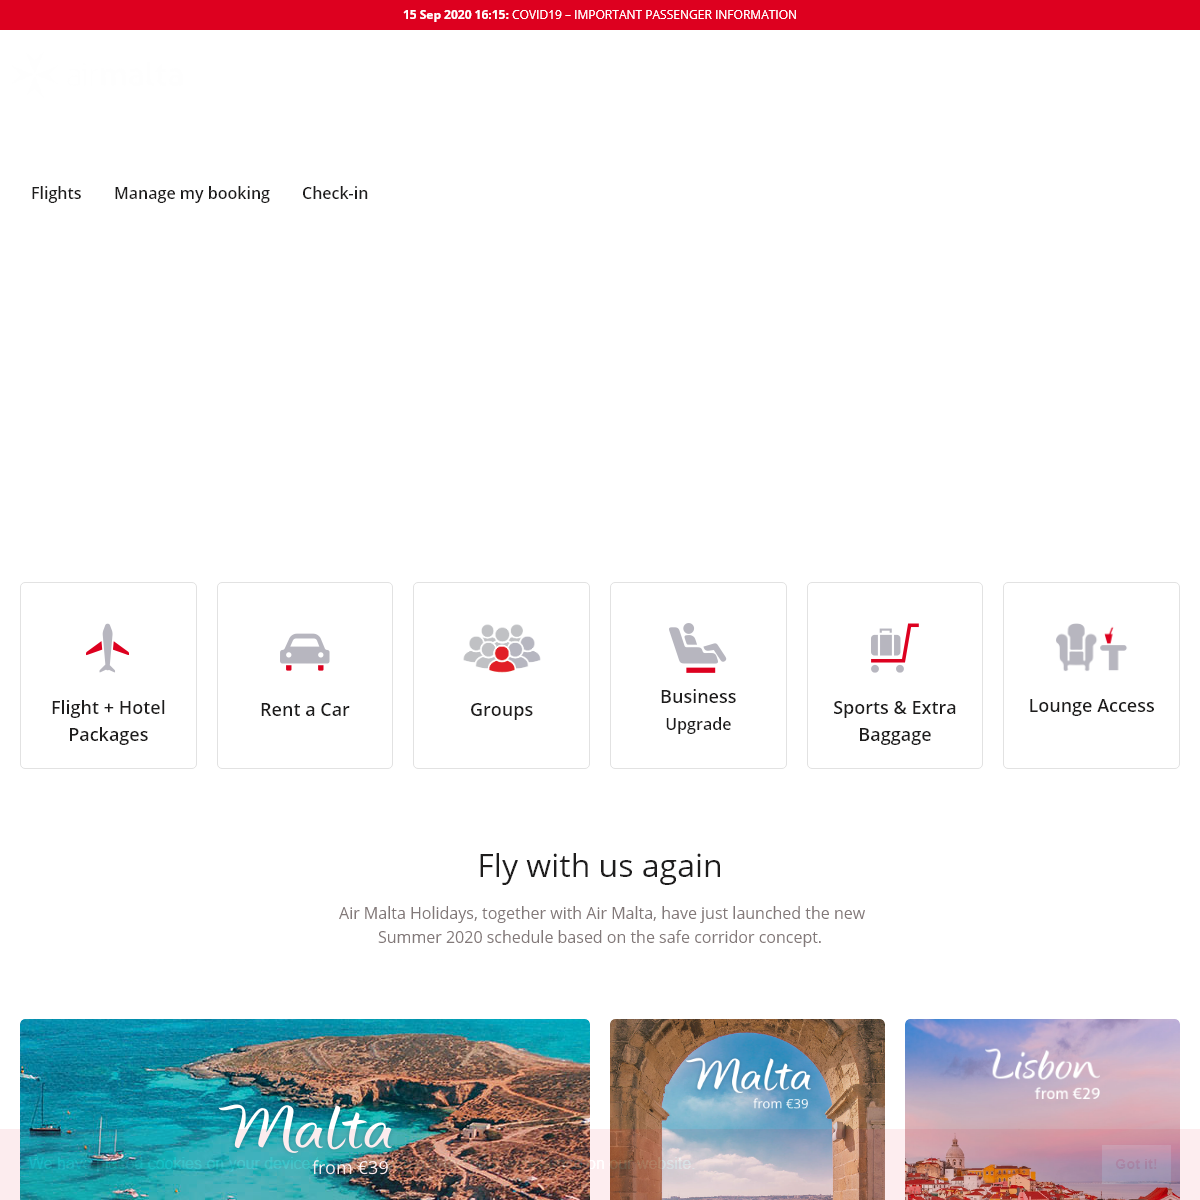 Malta Flights – Book your Flights to Malta with Air Malta